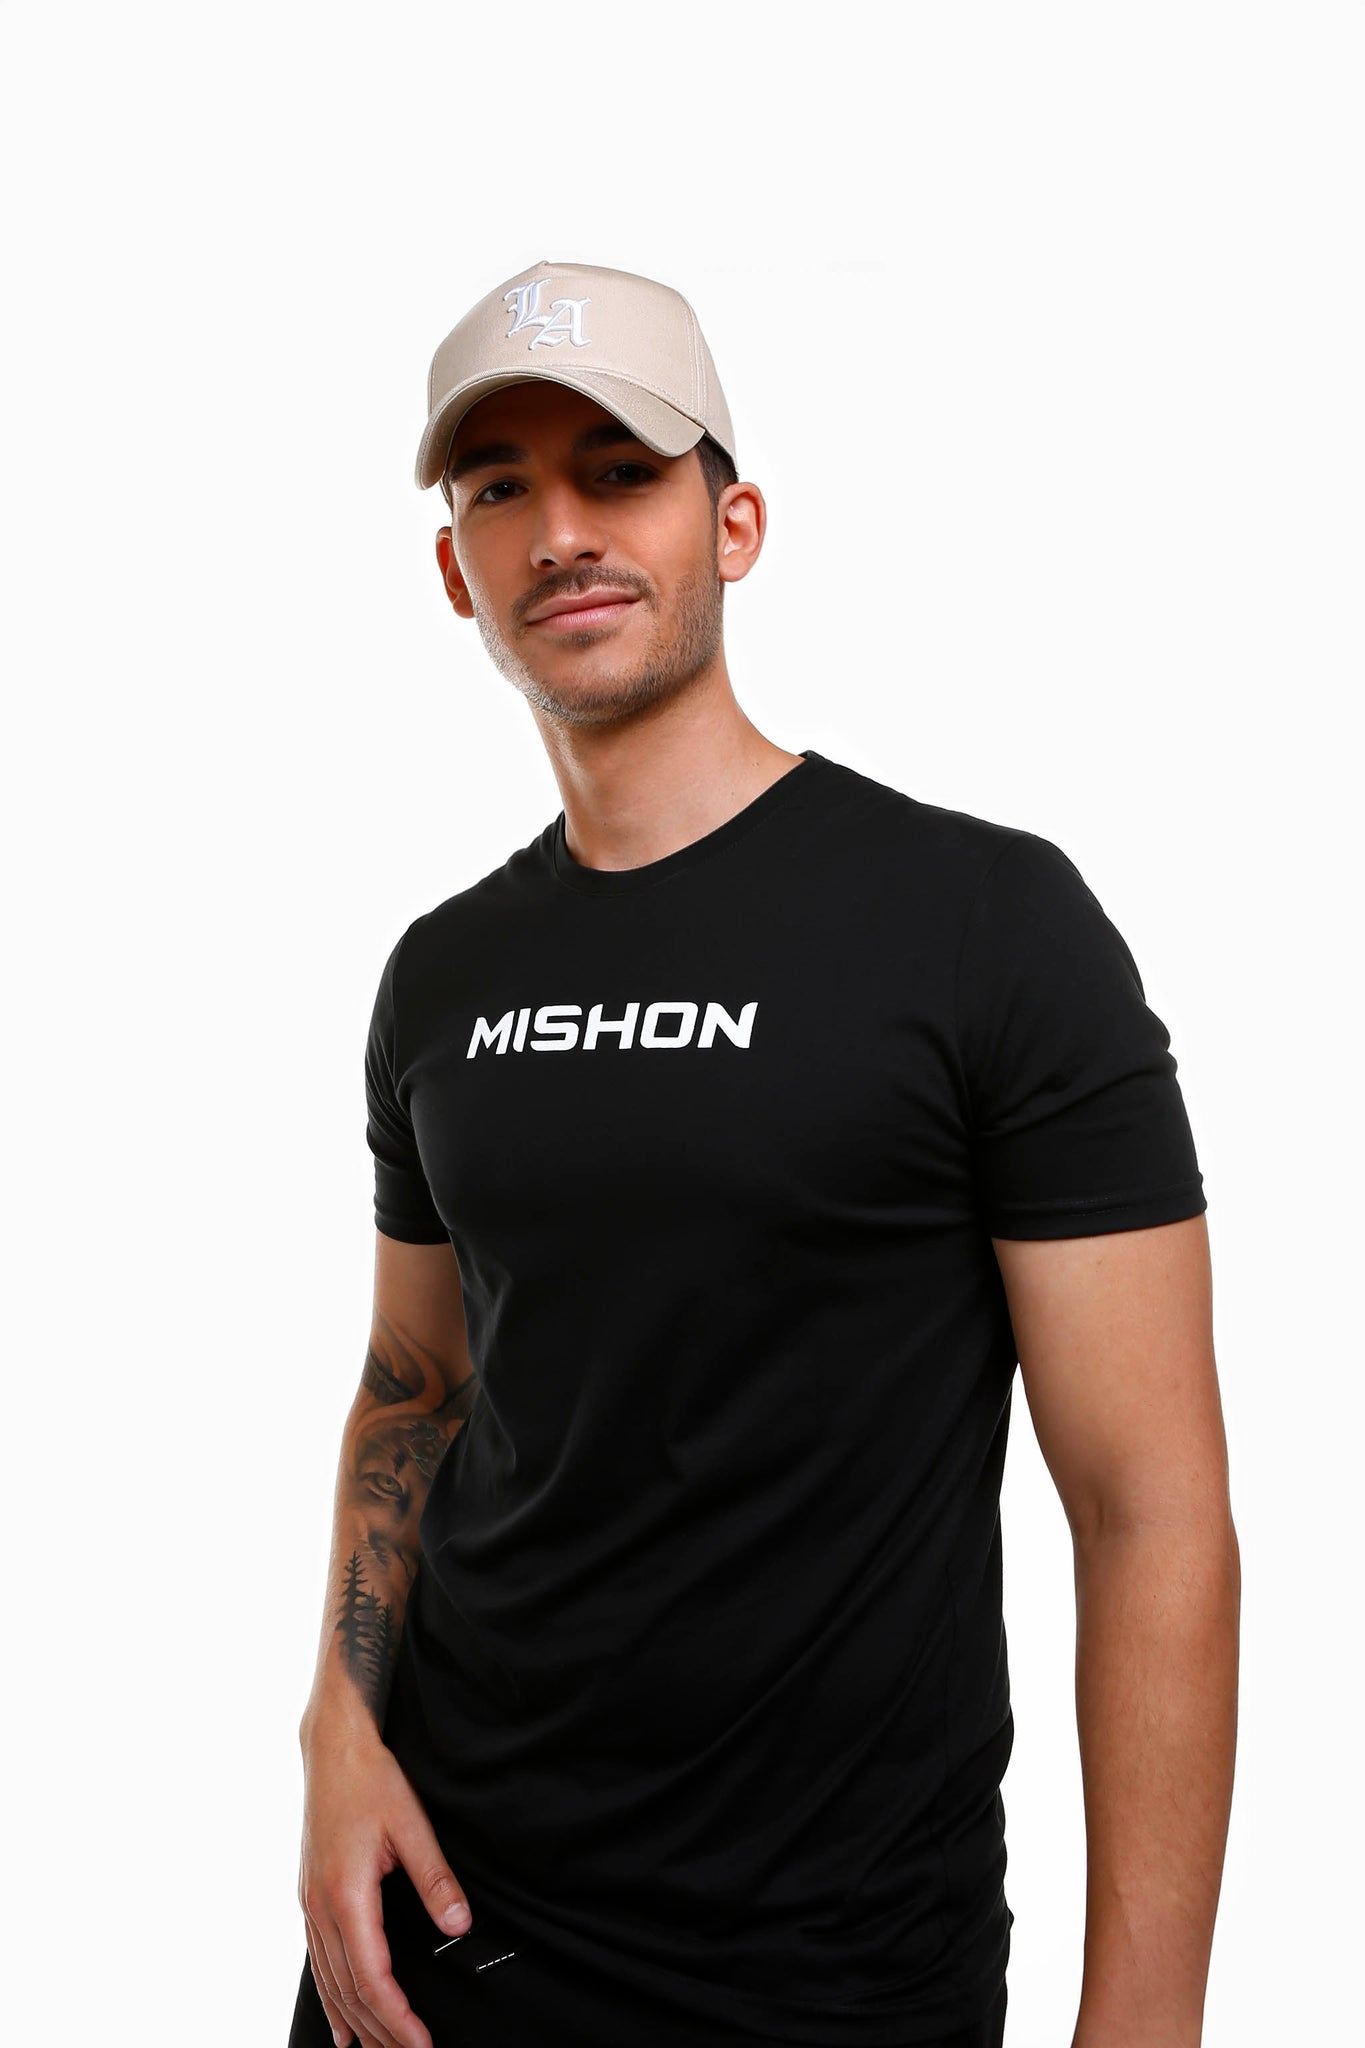 Mishon White on Black Tee